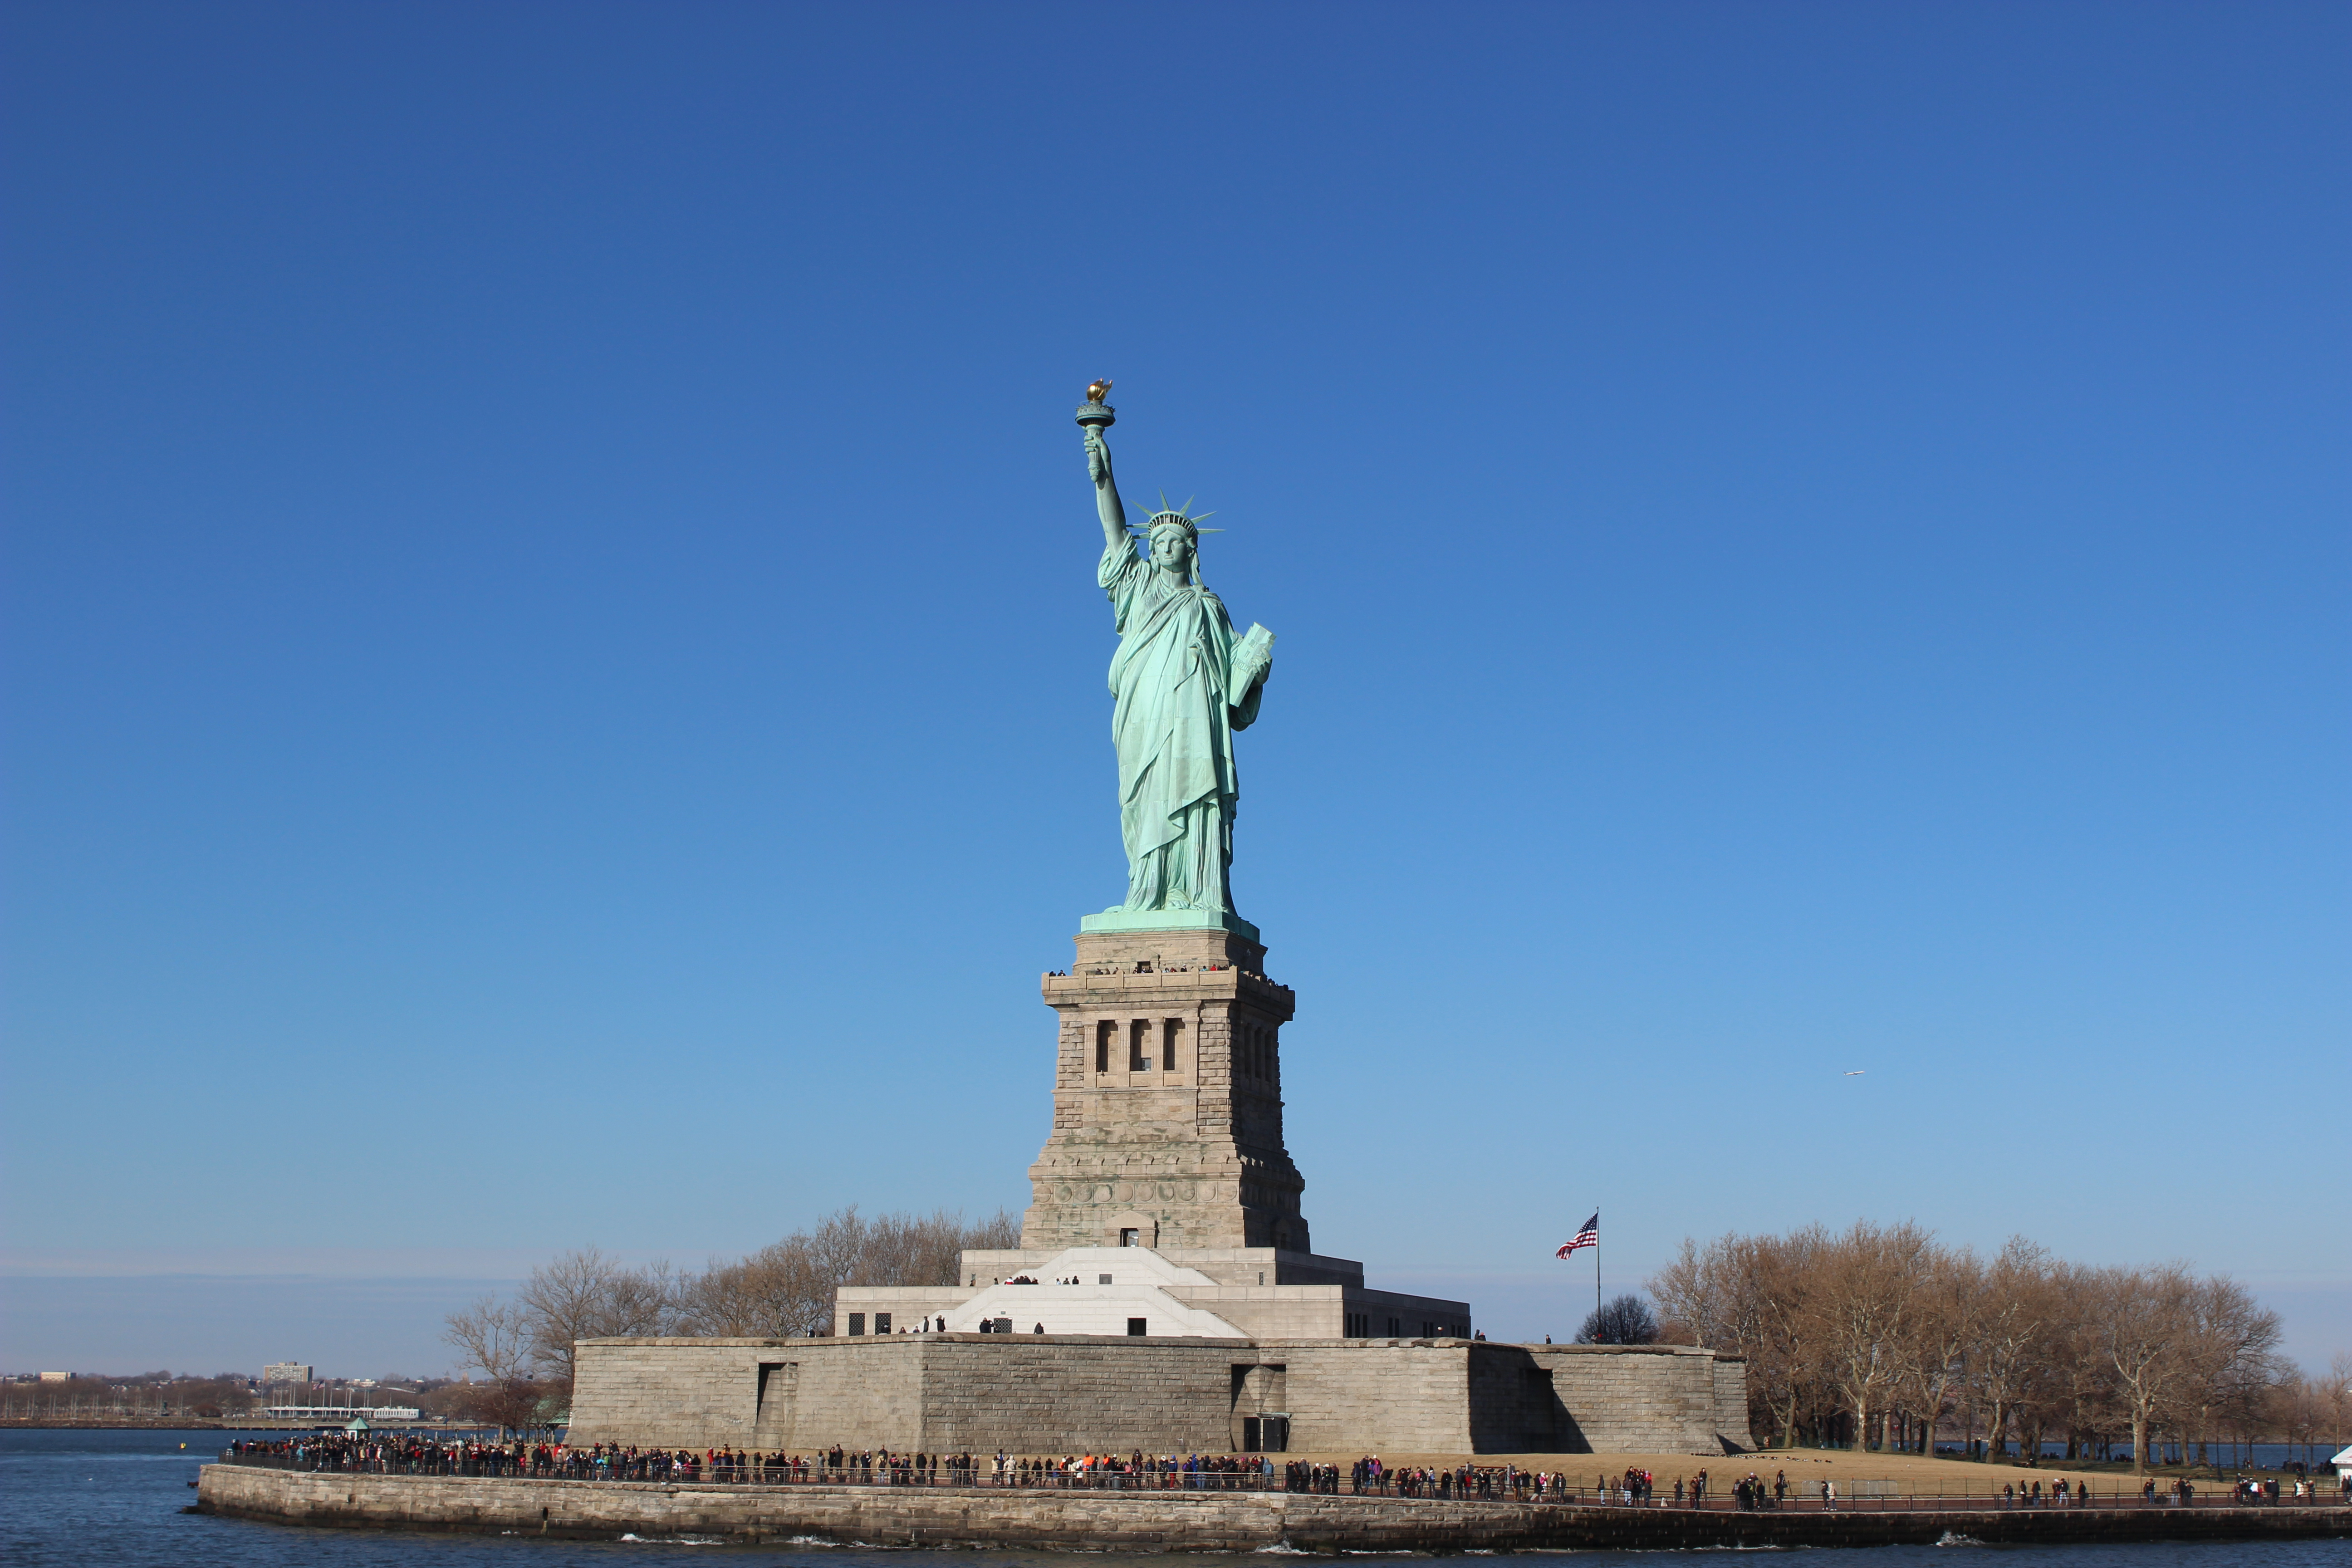 126 stand in the crown of the statue of liberty bucket list 250 the statue is 4625 meters tall and to go up to the crown you need to climb up the 354 step spiral staircase buycottarizona Gallery